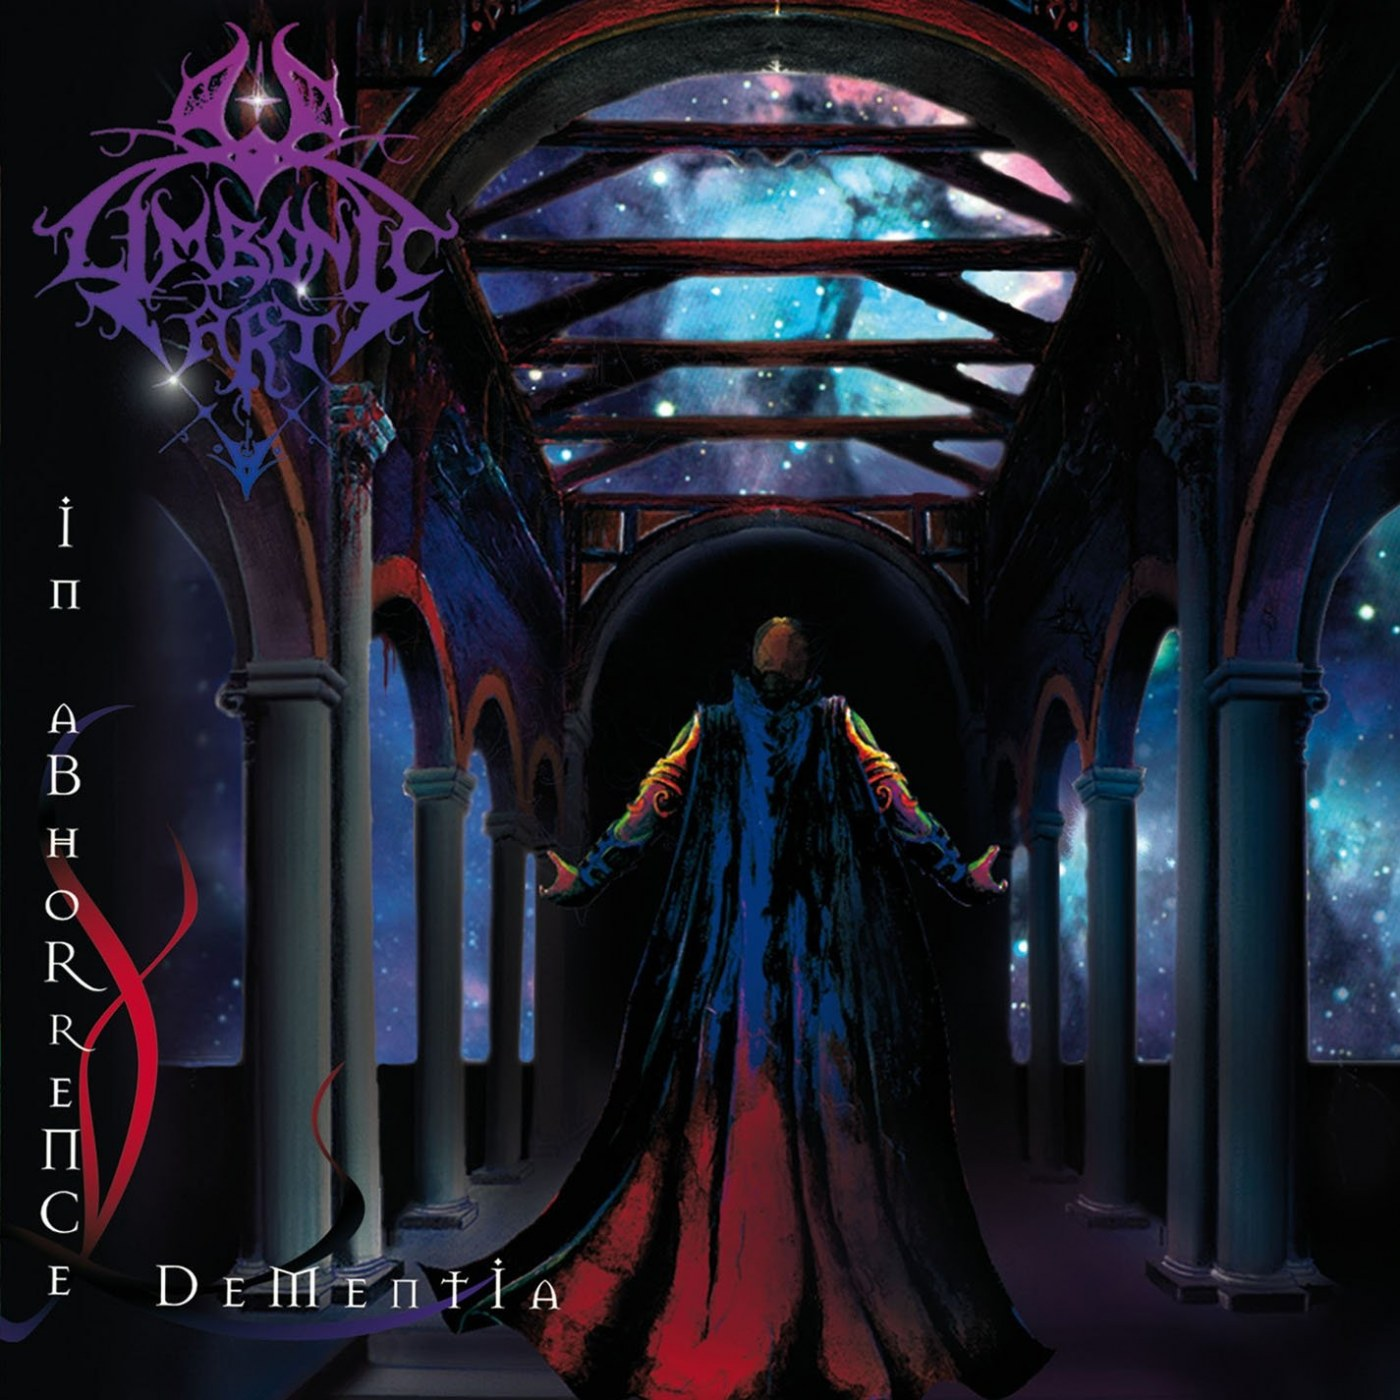 Review for Limbonic Art - In Abhorrence Dementia